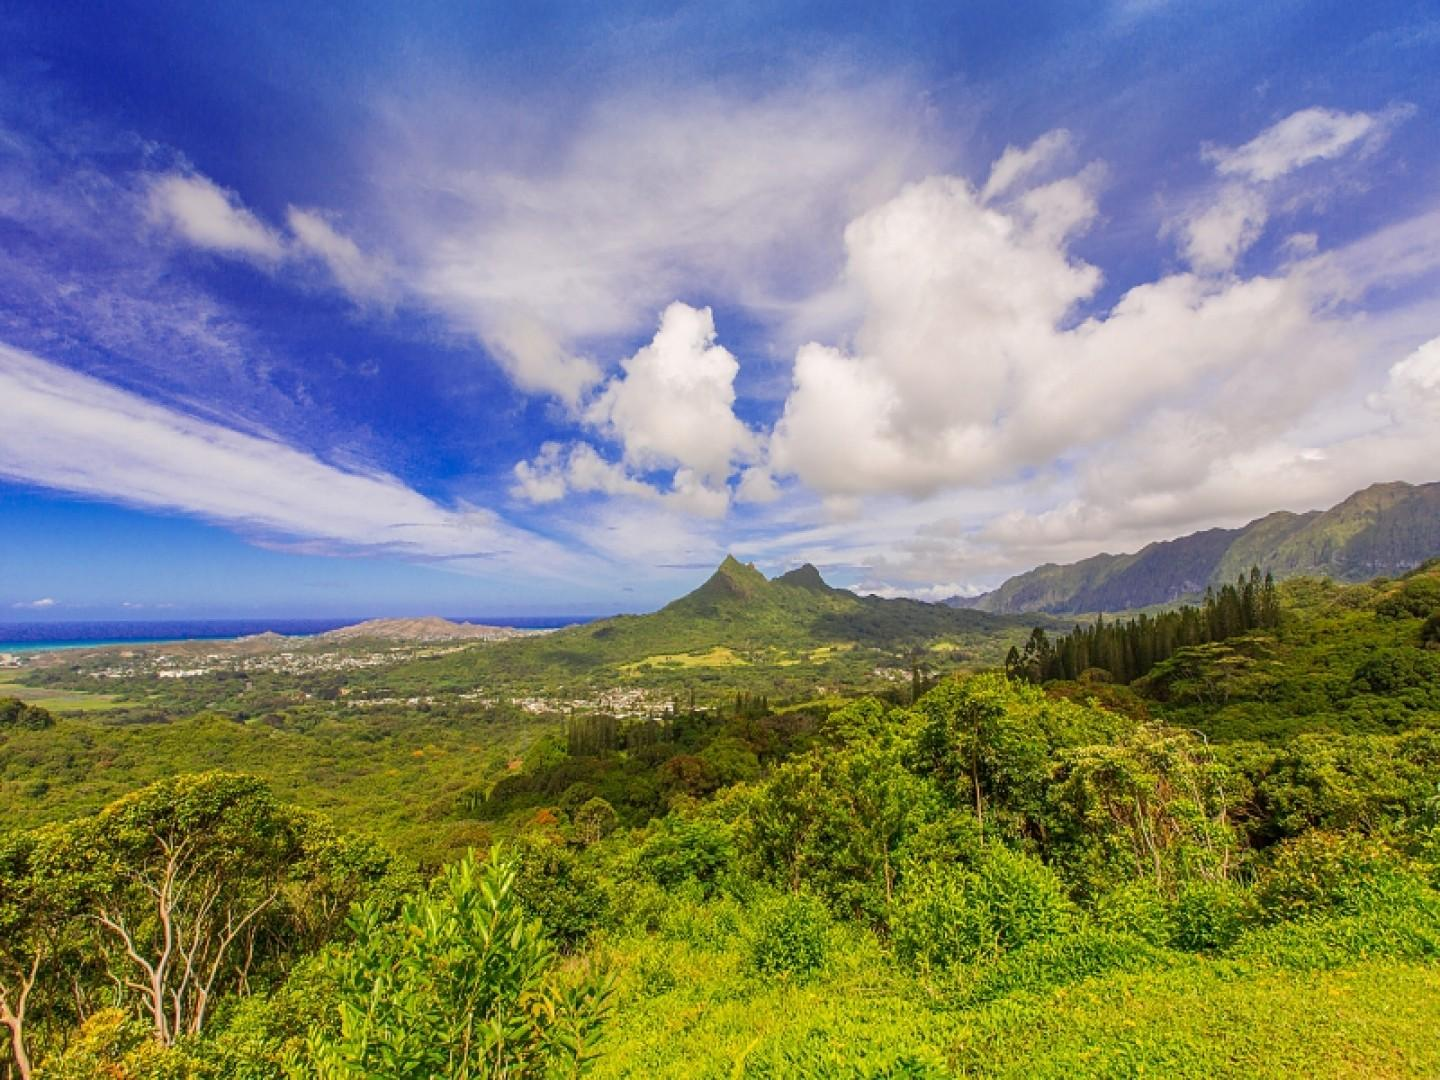 The beautiful windward side of the island!